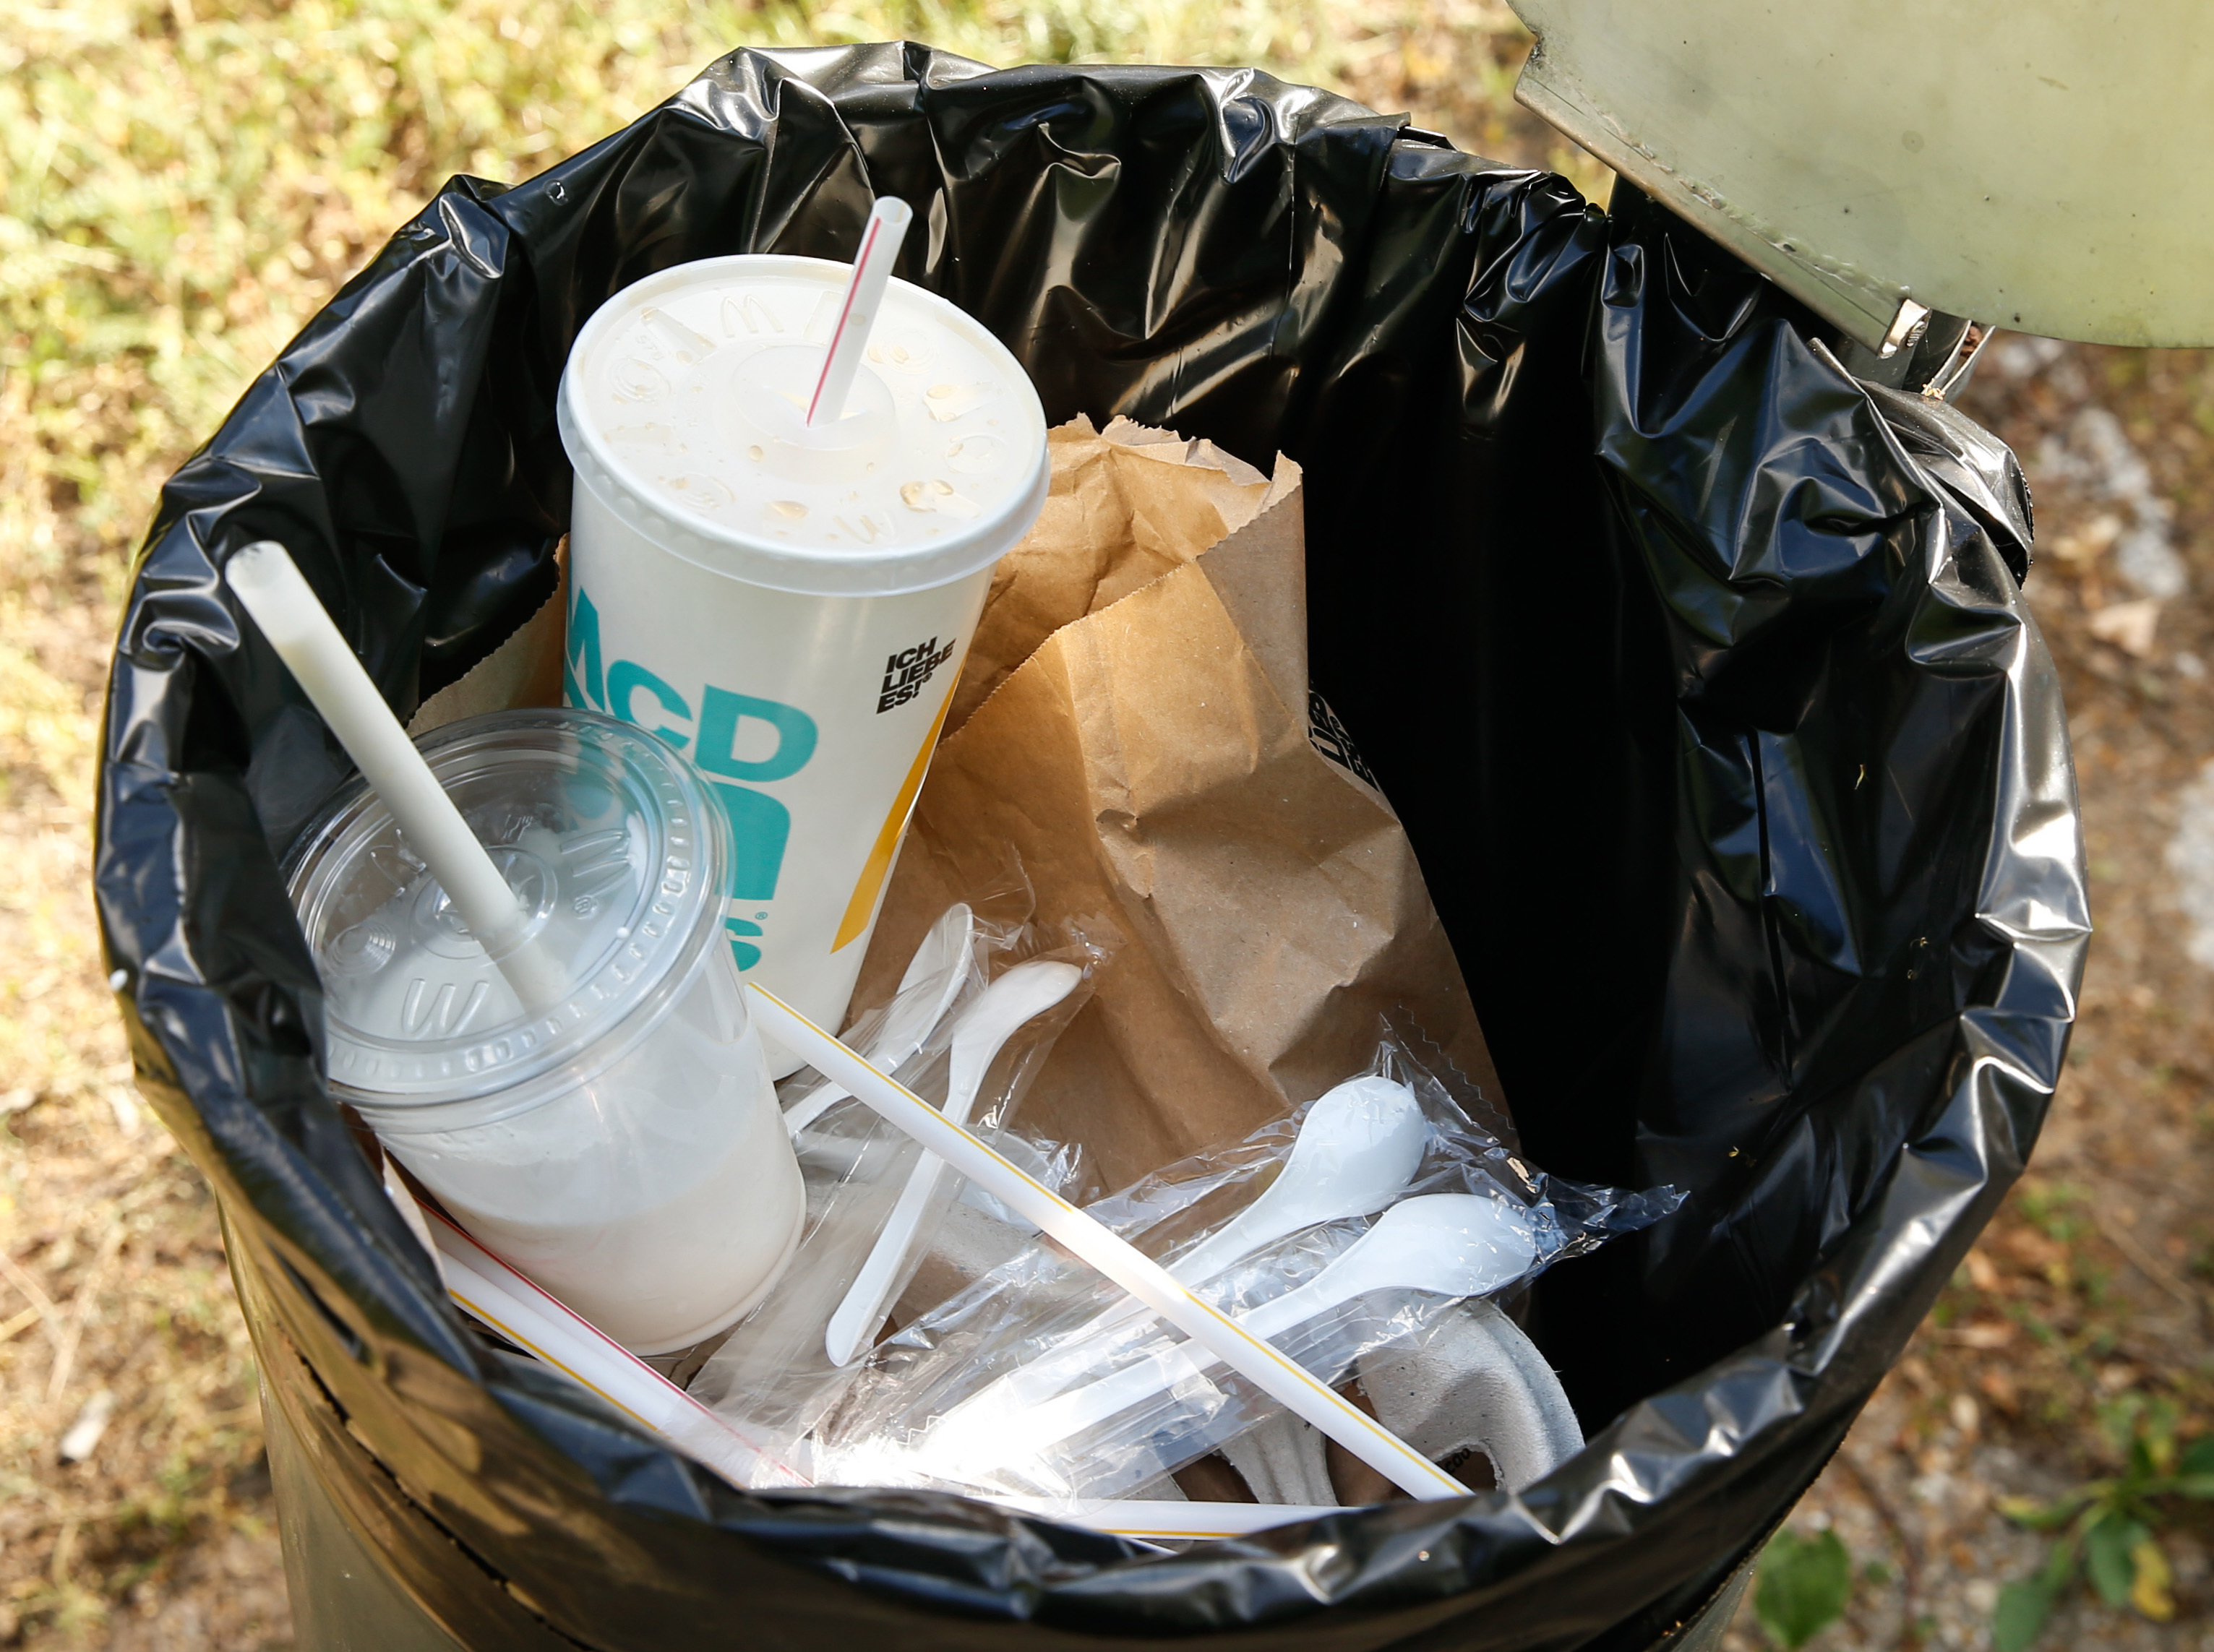 McDonald's new eco-friendly paper straws can't be recycled